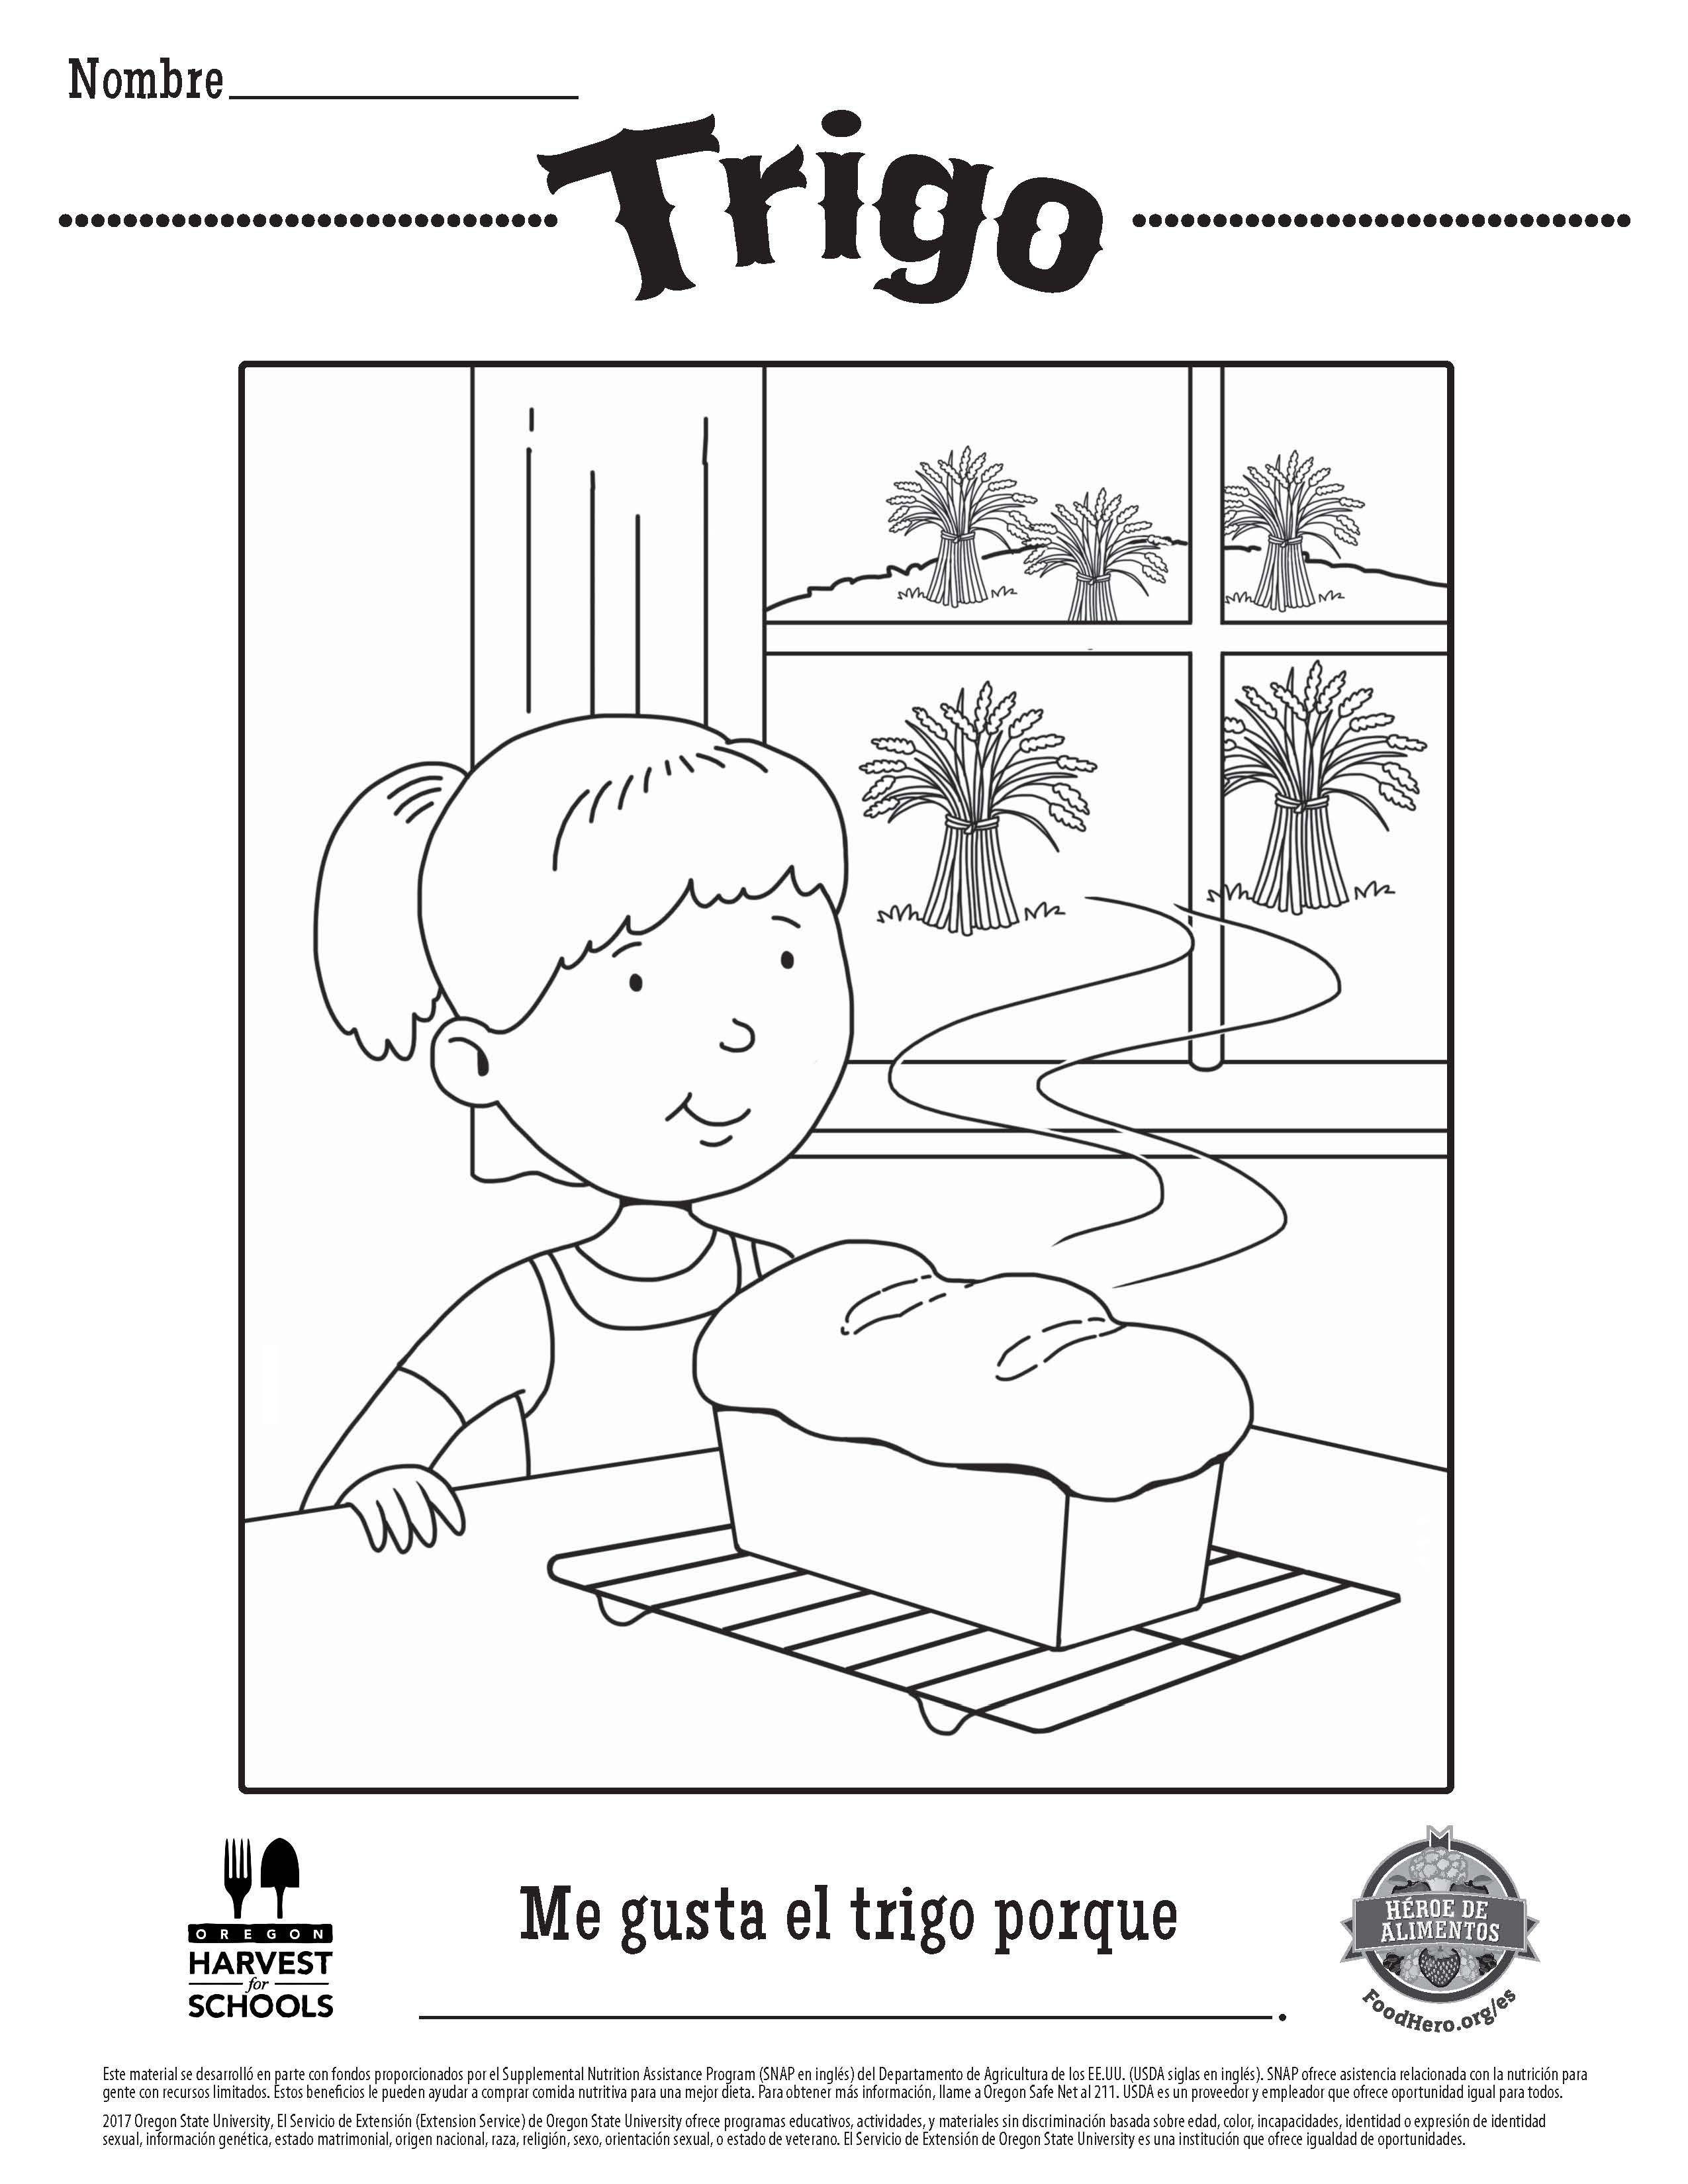 Coloring Sheets in Spanish. Healthy Coloring Sheets. Food Hero ...